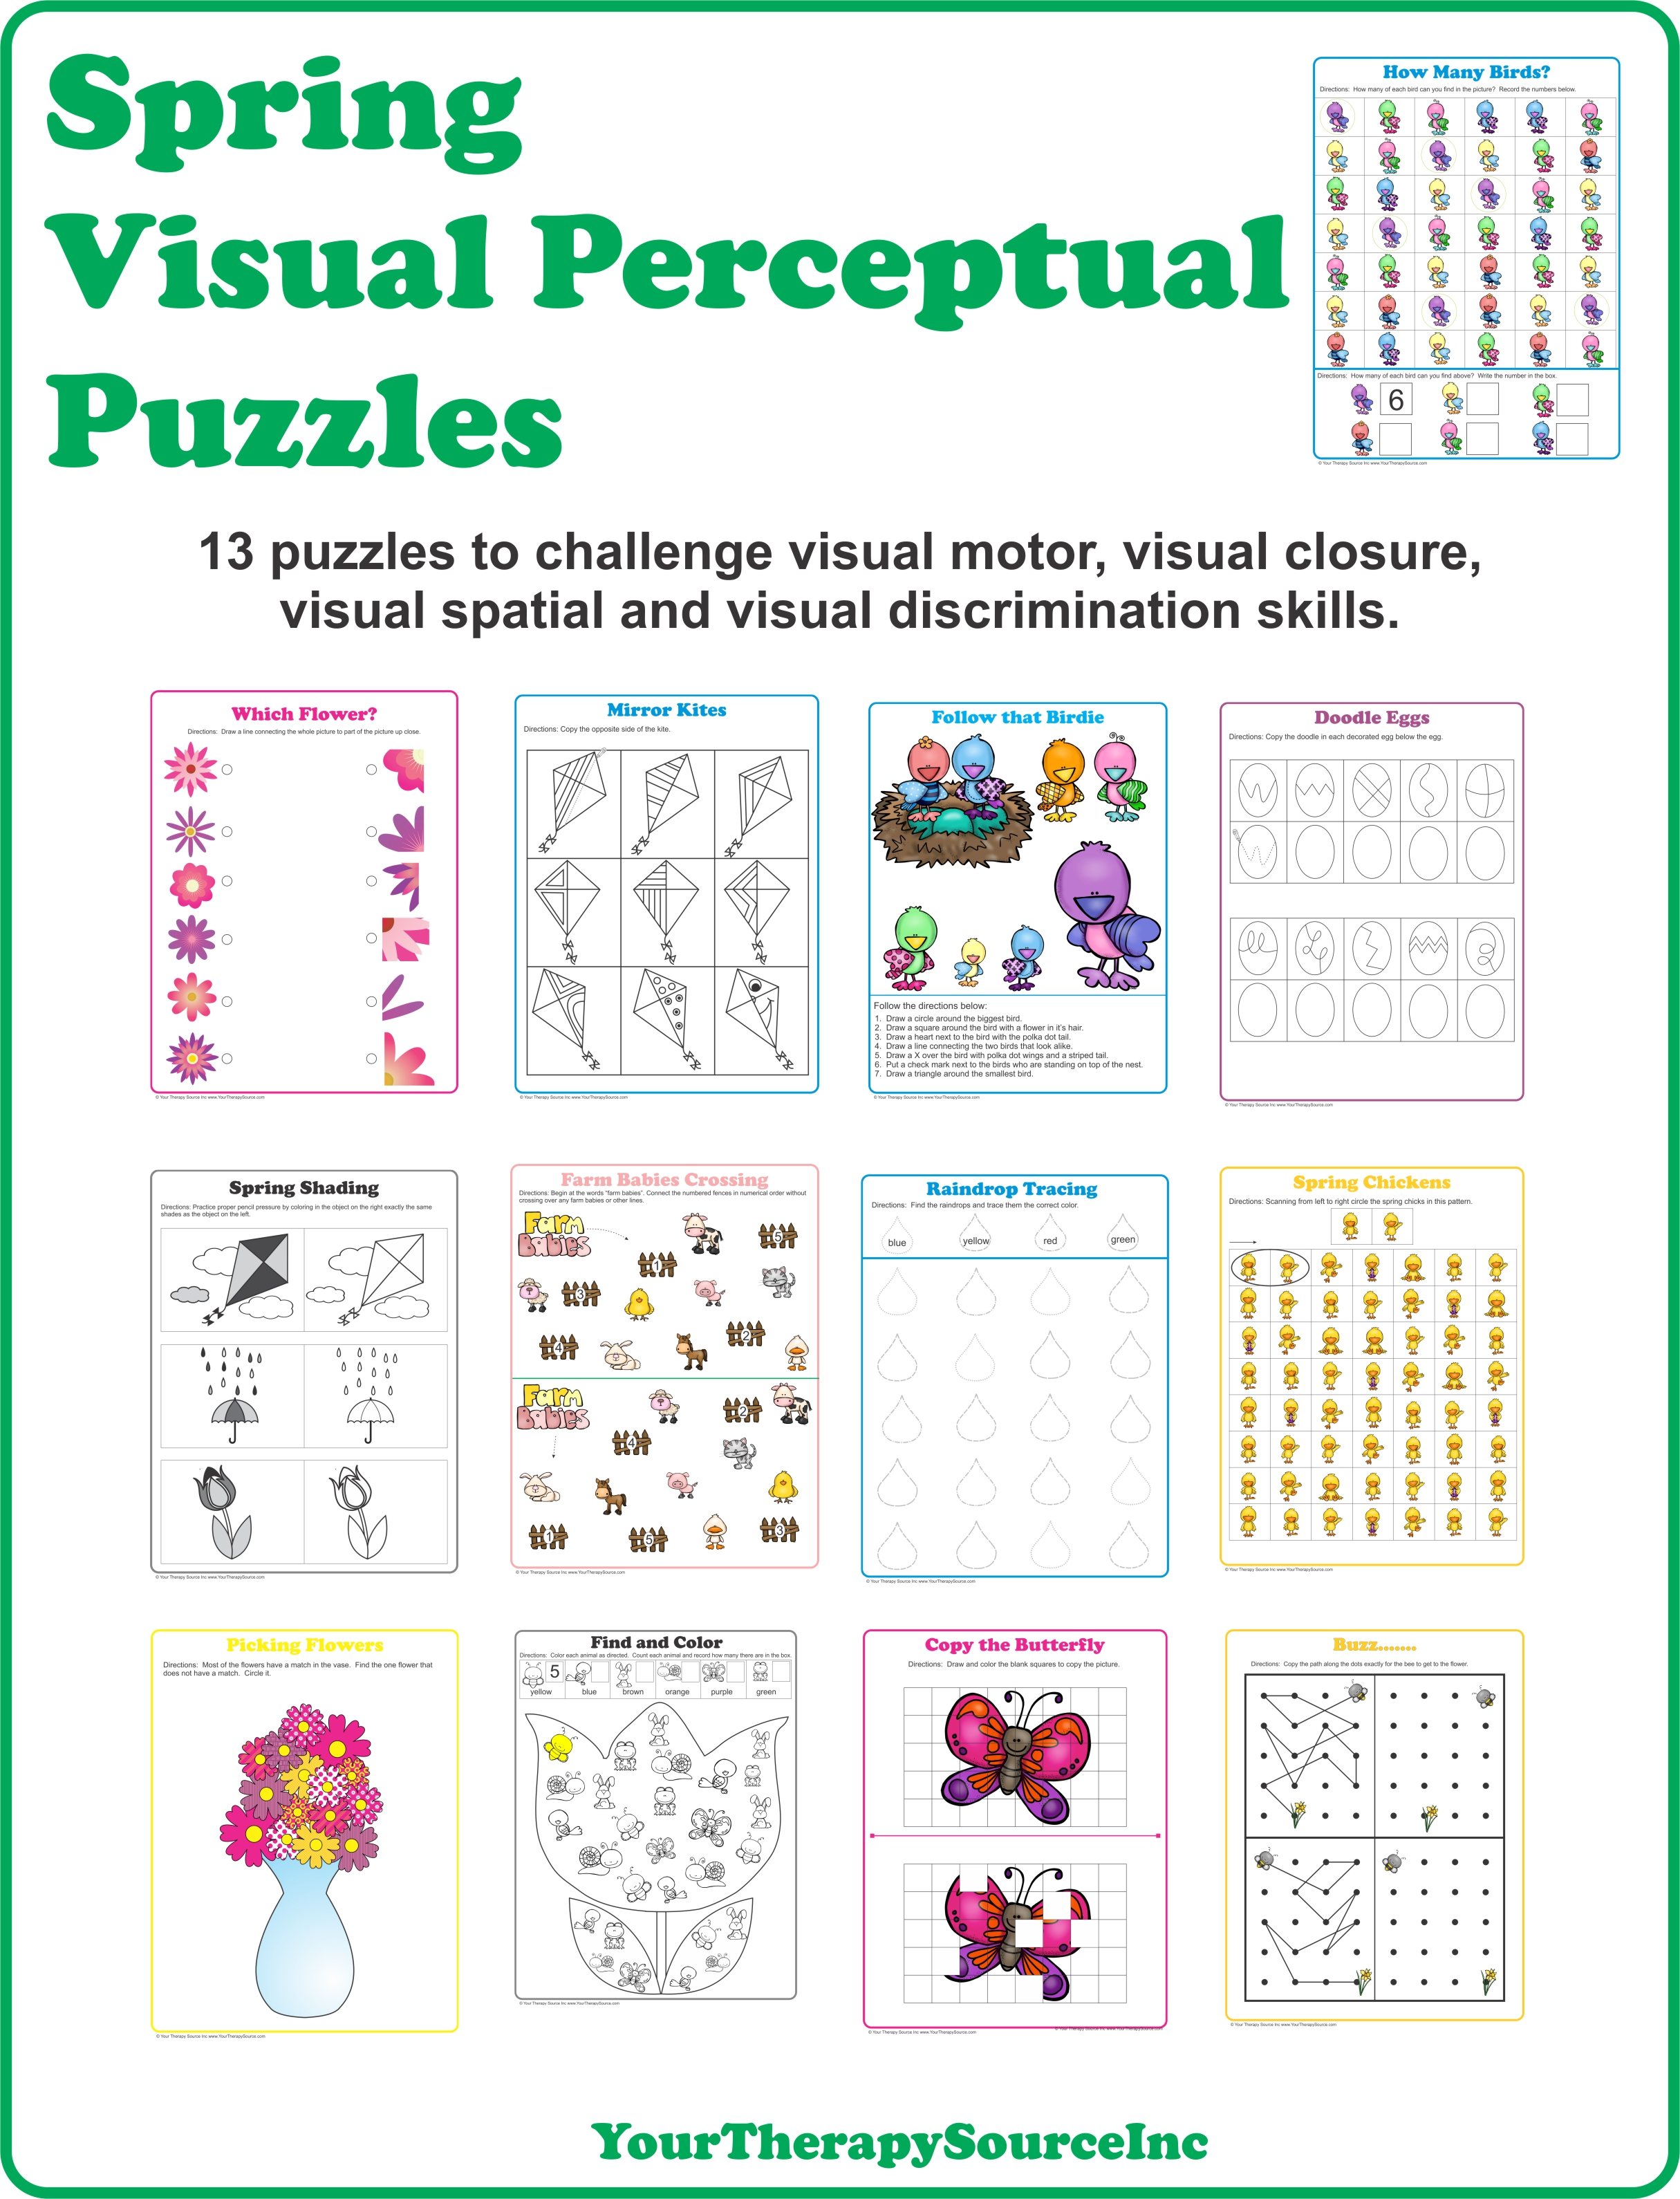 Worksheets Visual Perceptual Skills Worksheets spring visual perceptual puzzles your therapy source puzzles